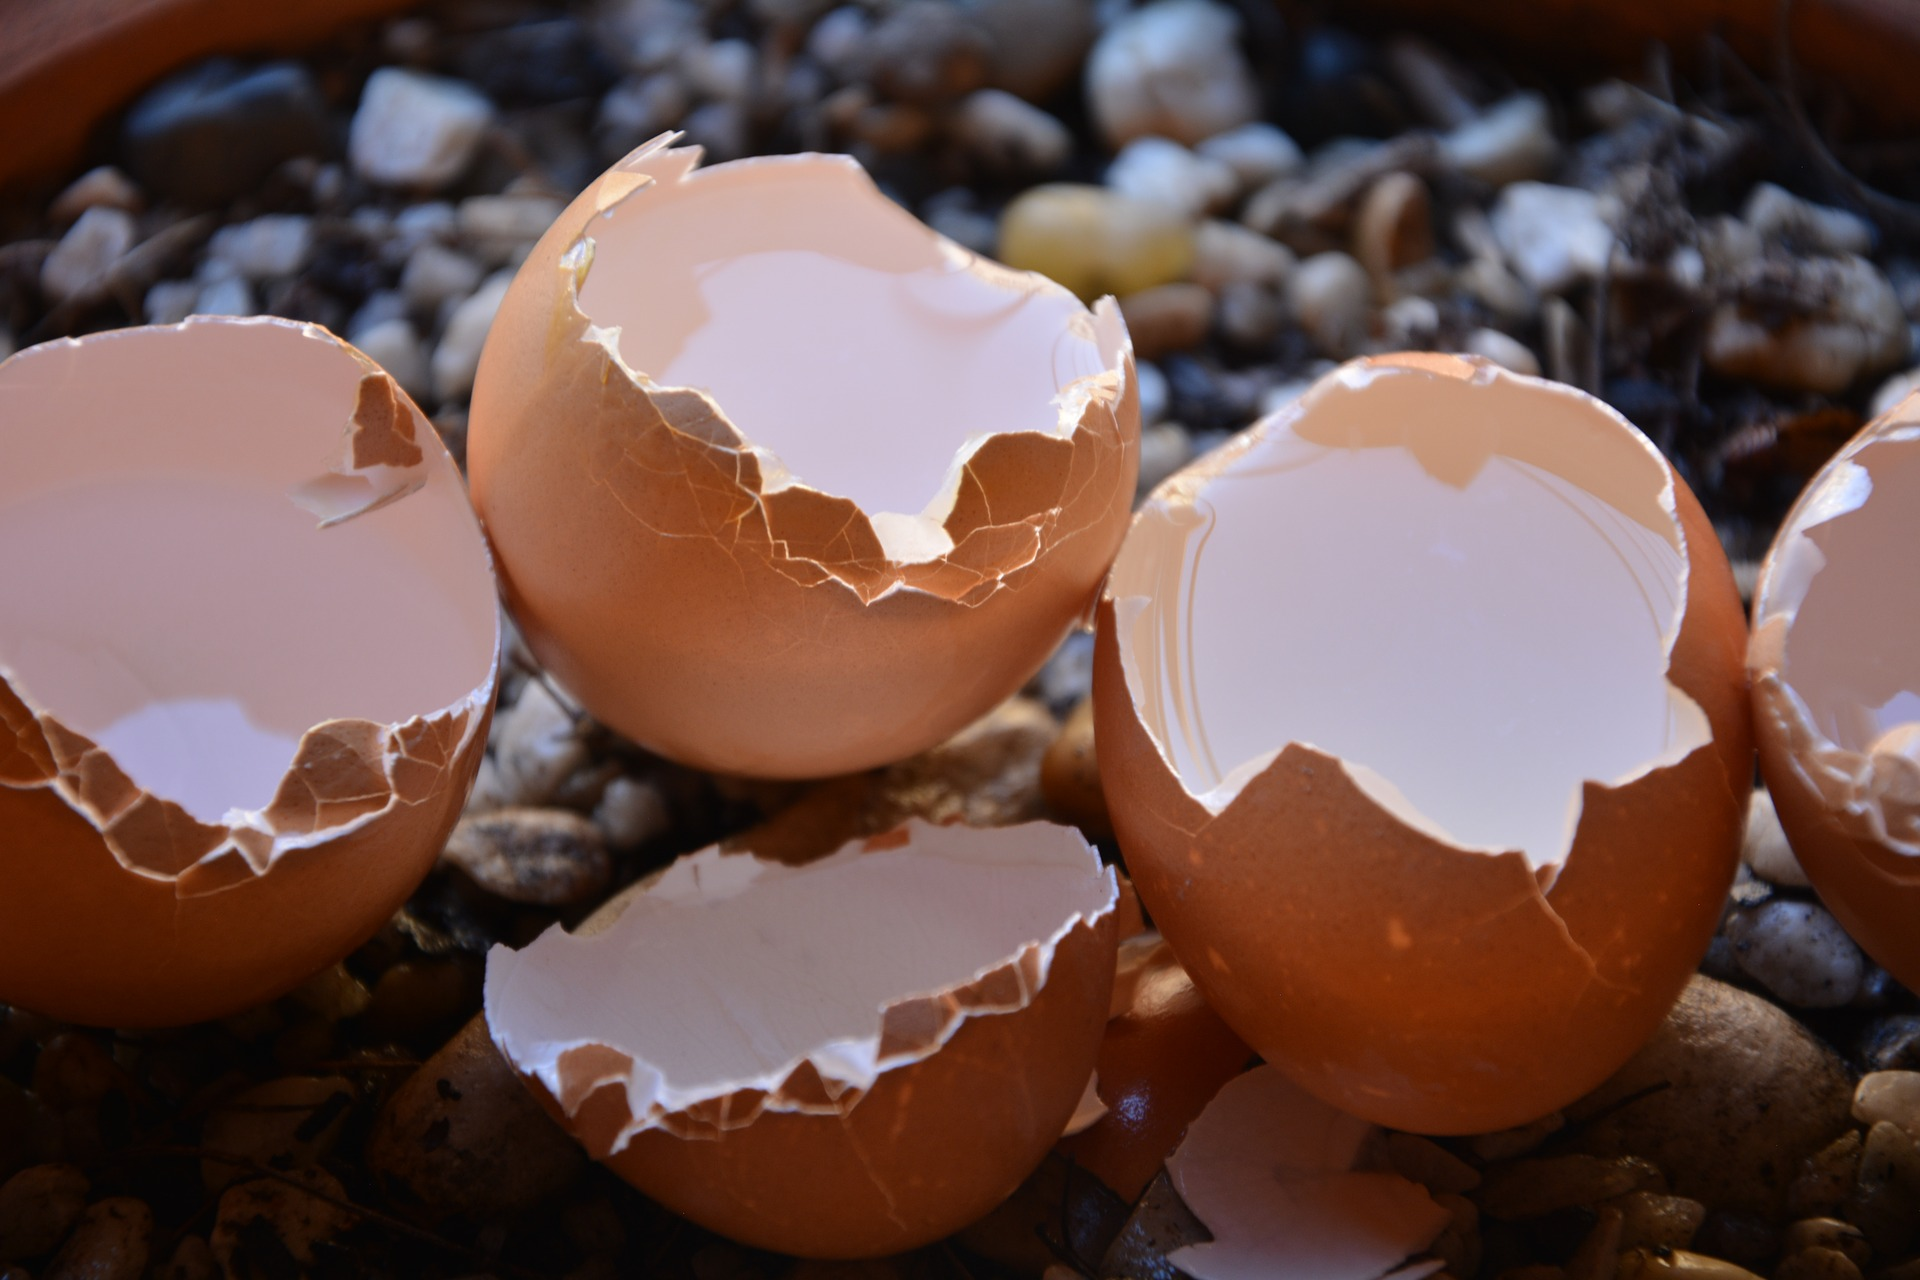 Eggshells In The Garden